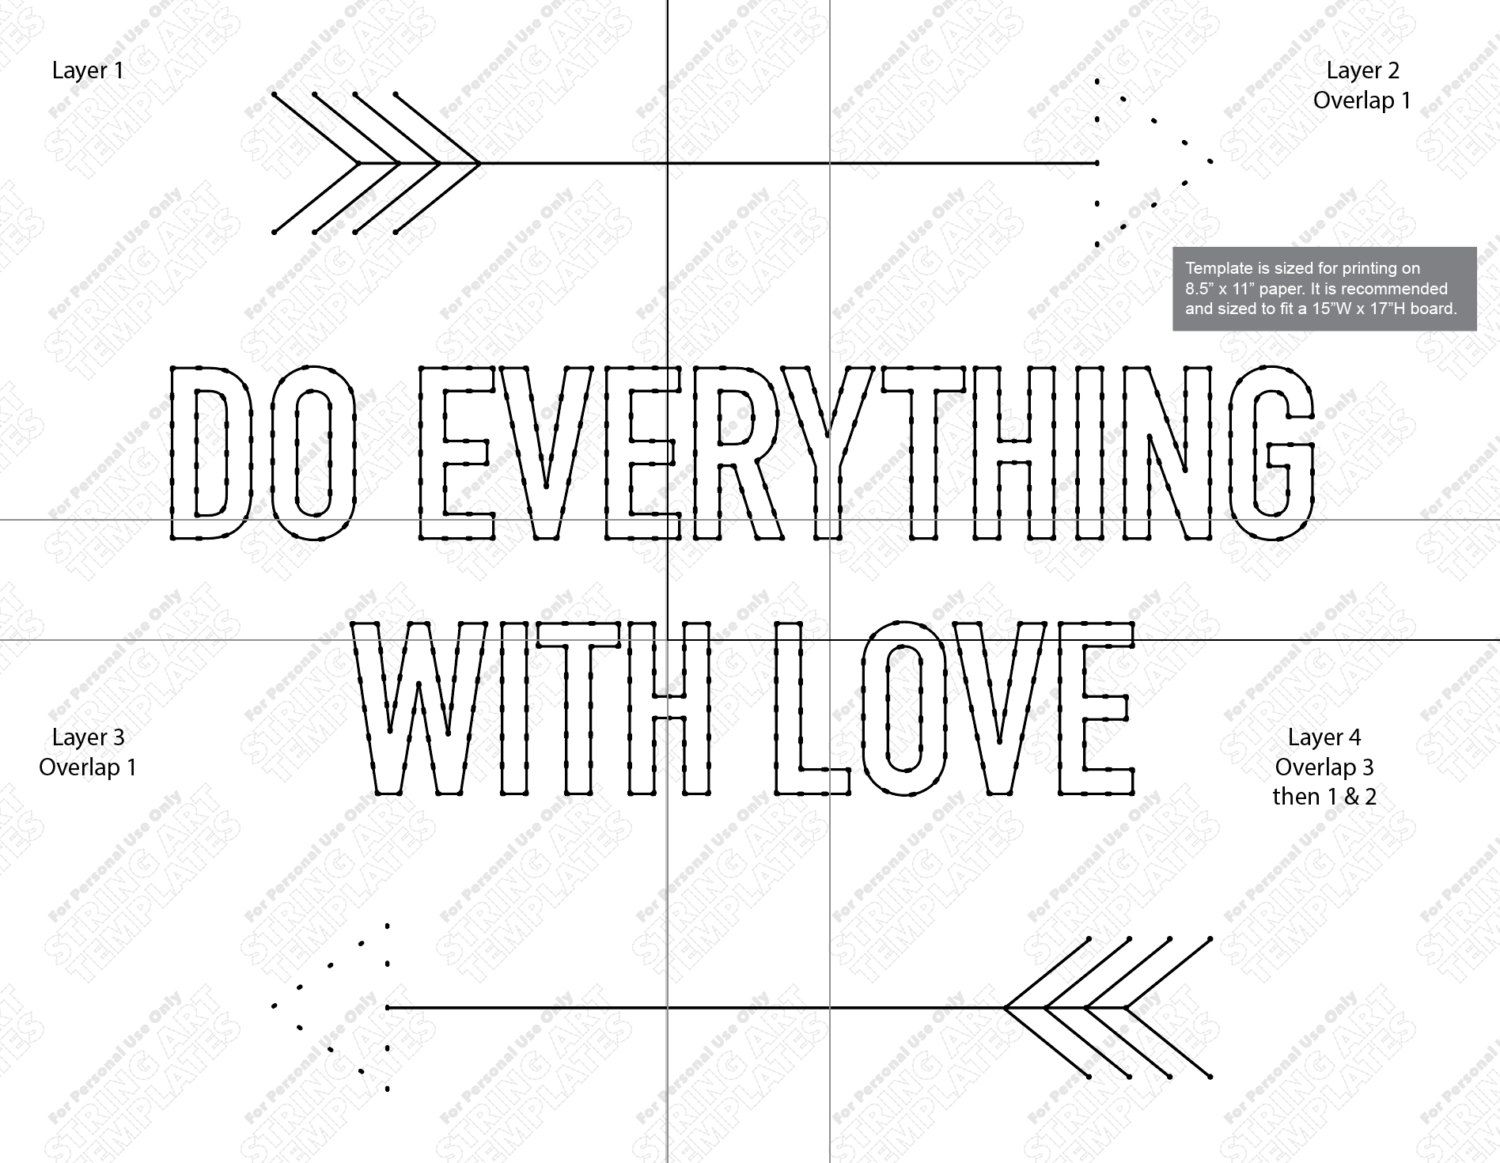 Do everything with love - String art template | String art templates ...